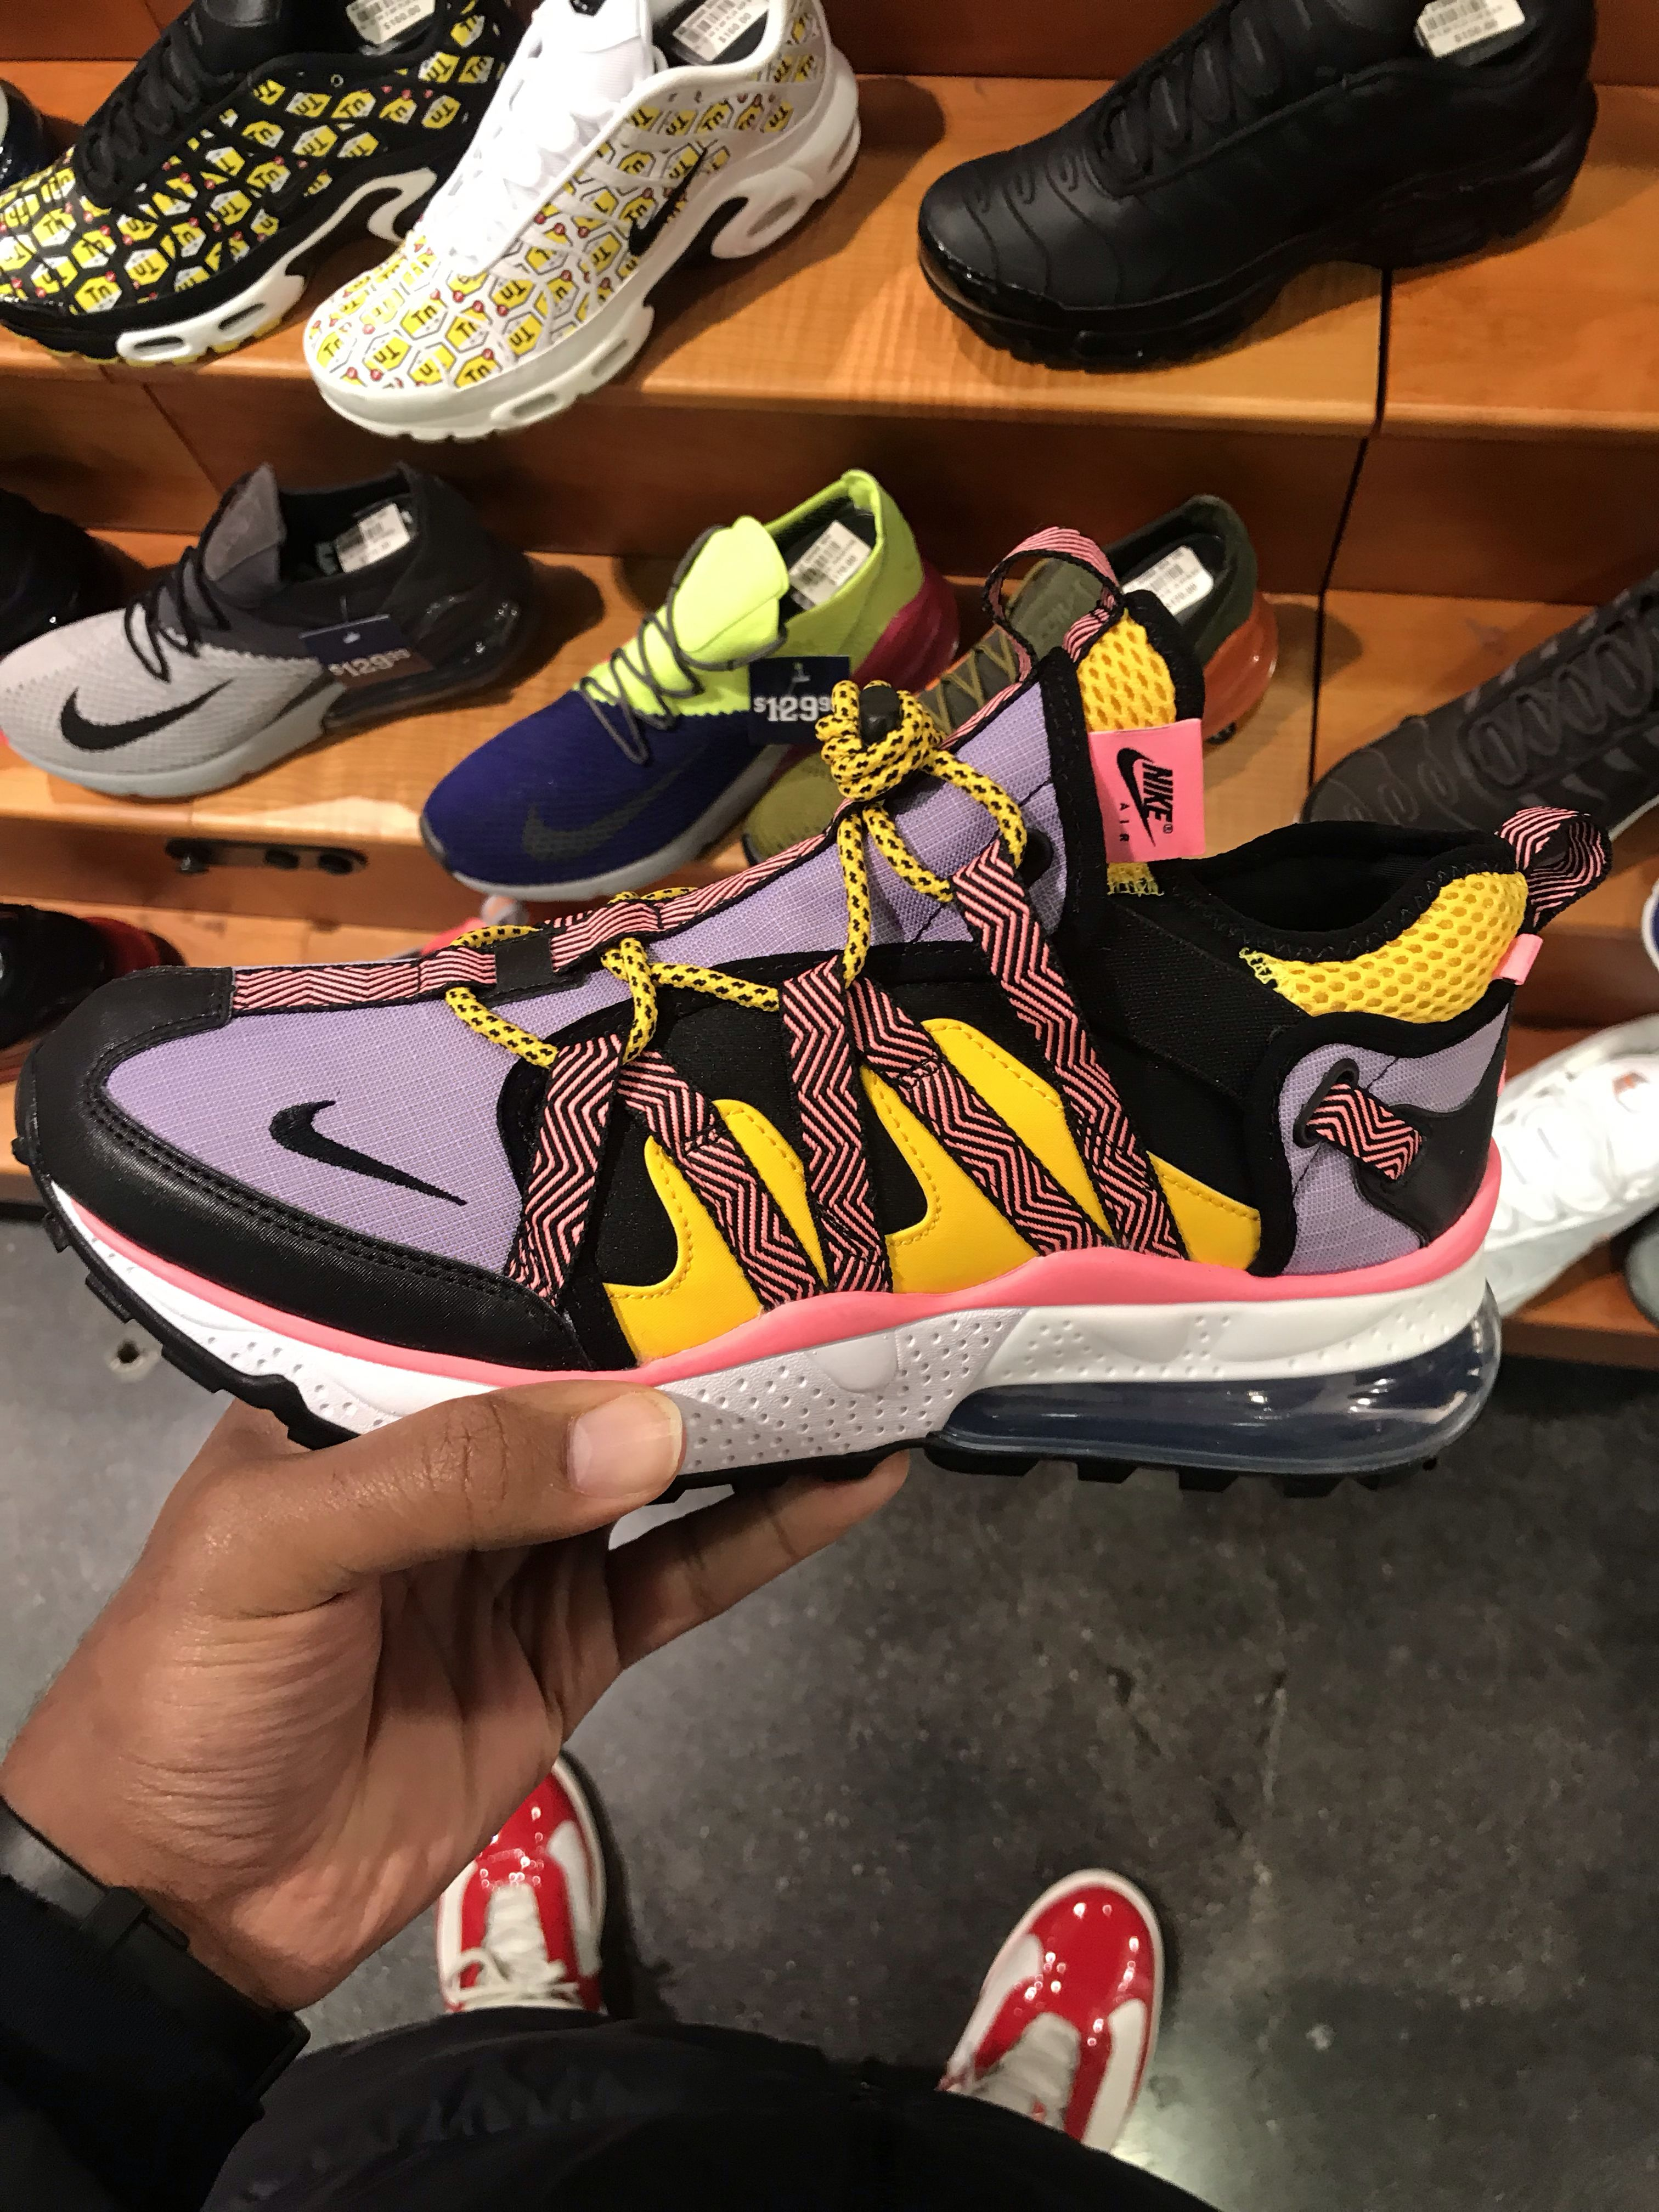 separation shoes 984b2 fa71e Nike Air Max, Running Shoes, Dressing, Running Trainers, Running Routine